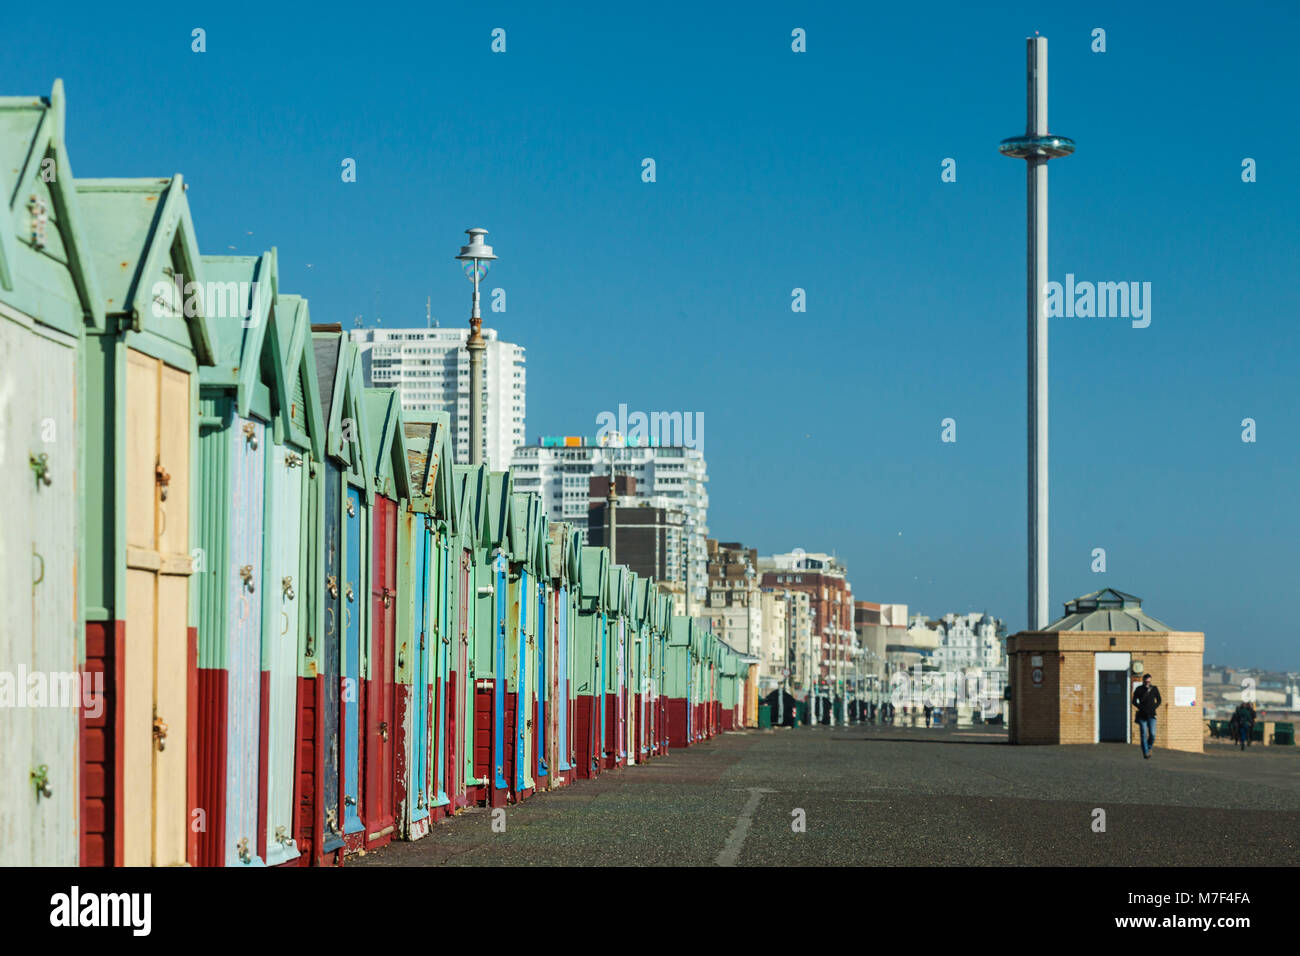 Front de mer de Brighton, East Sussex, Angleterre. i360 tower au loin. Photo Stock